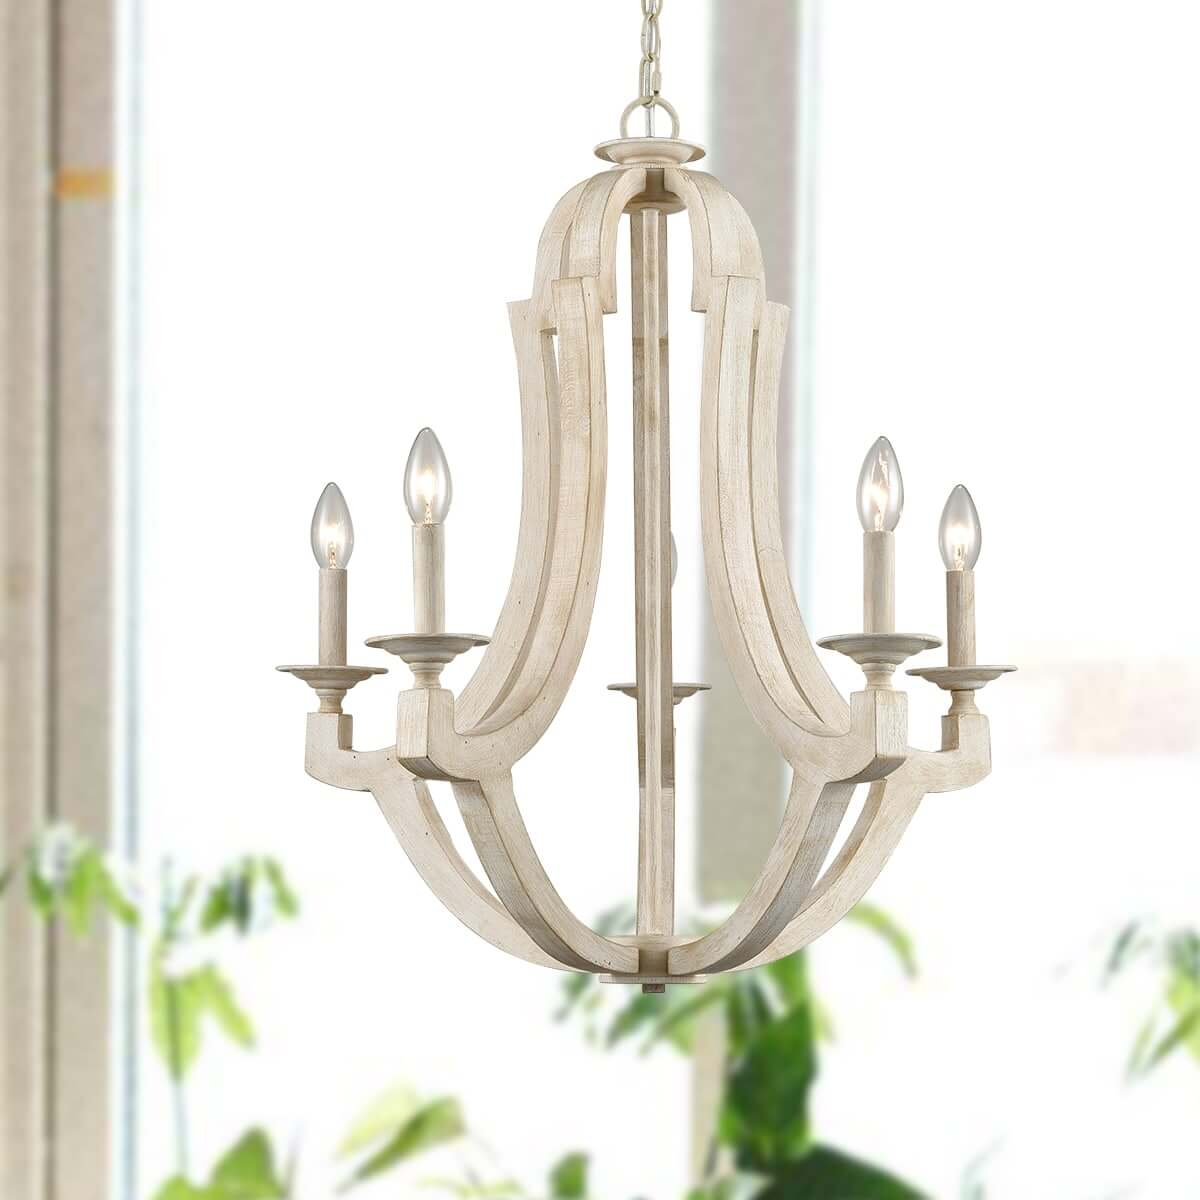 Distressing Off-white Country Wooden Candelabra Chandeliers 5-Light